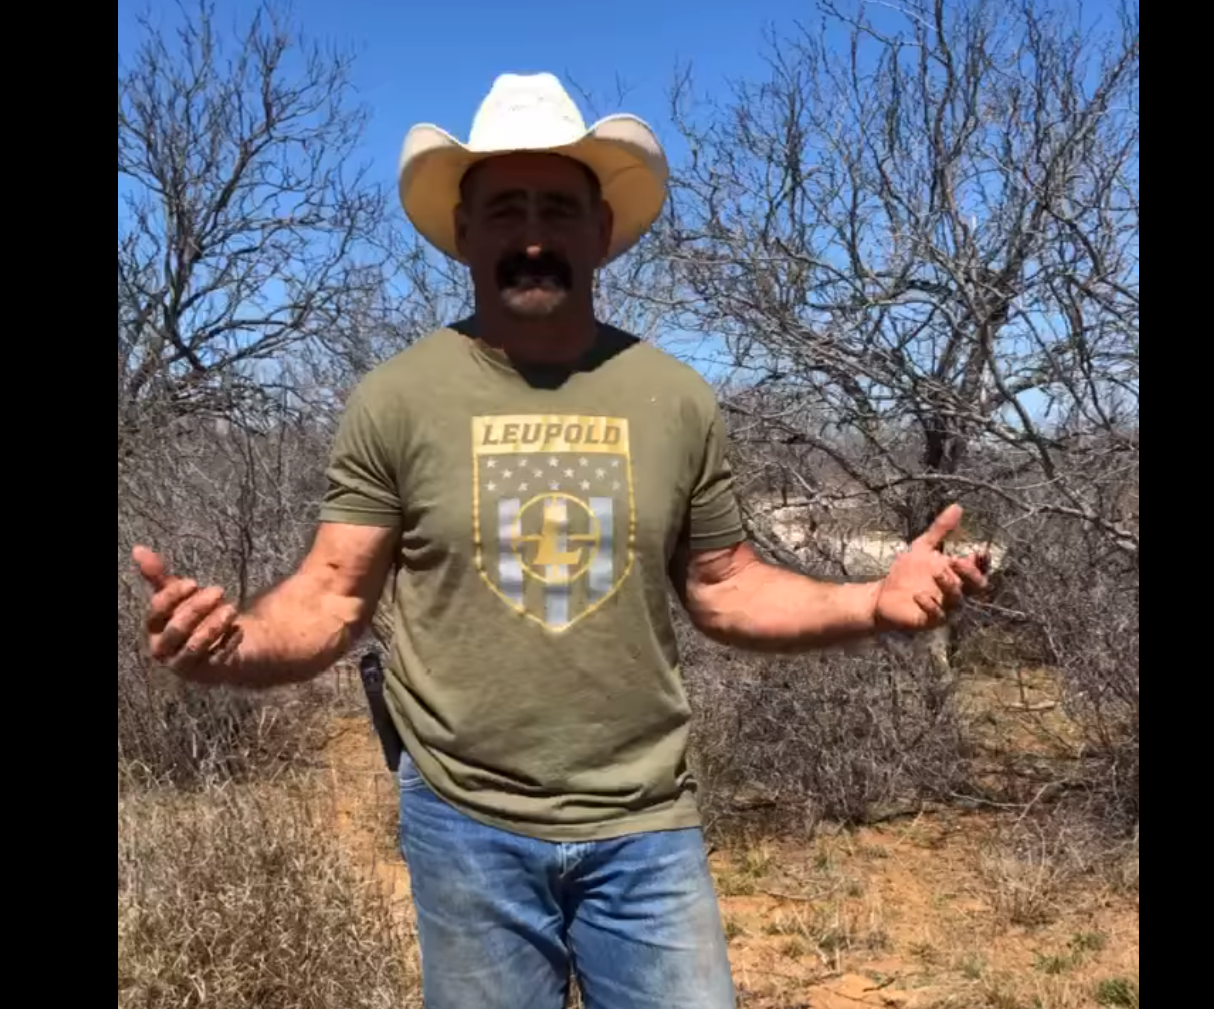 'Border is Under Attack': Rancher Says Illegal Immigrants Repeatedly Causing Property Damage, Trashing Land